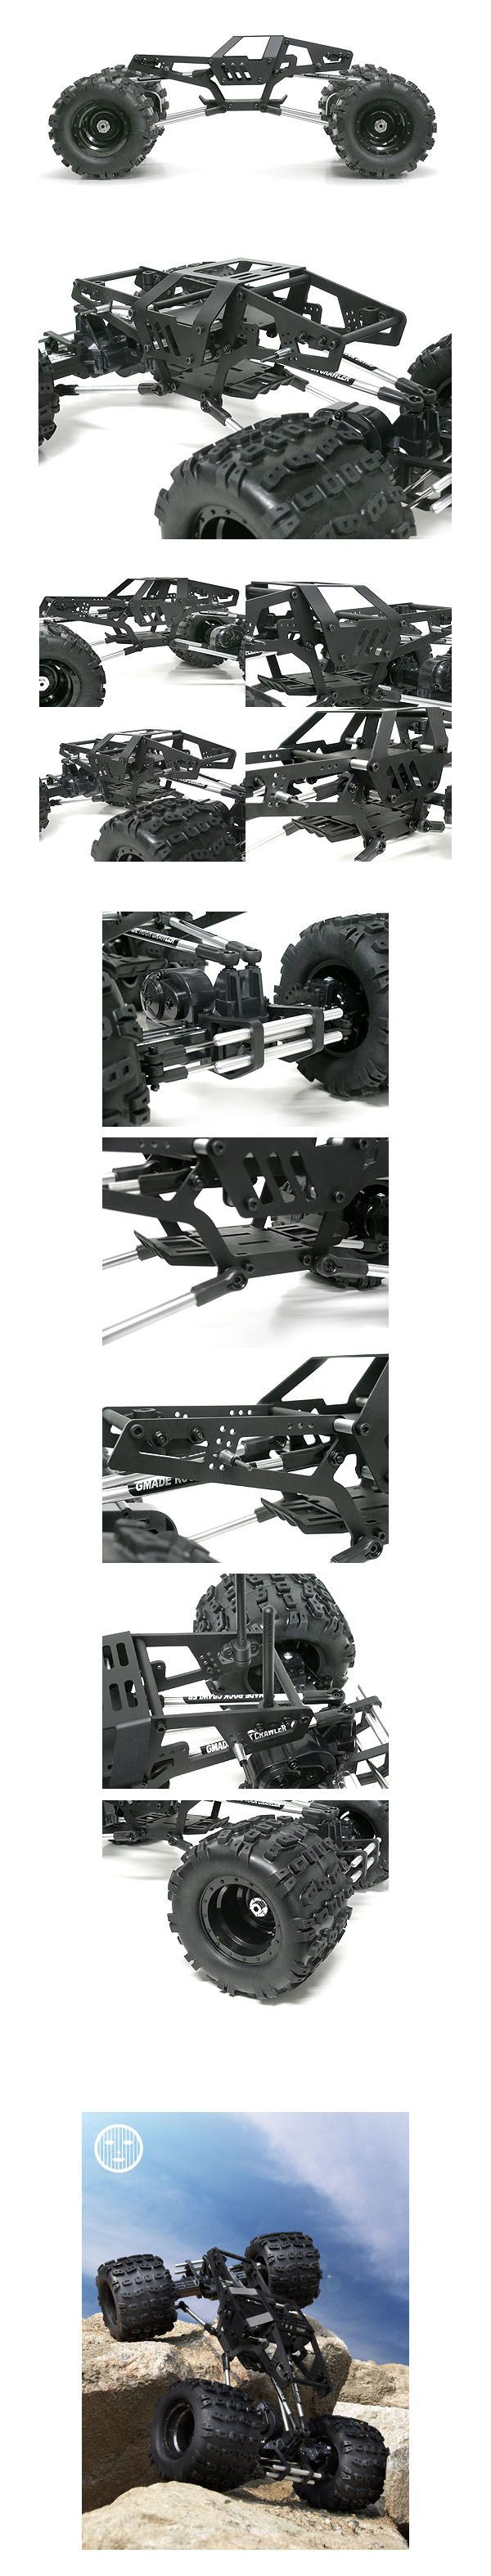 Stealth Rock Crawler Truck Kit(Discontinued) : Gmade Dealer Webstore